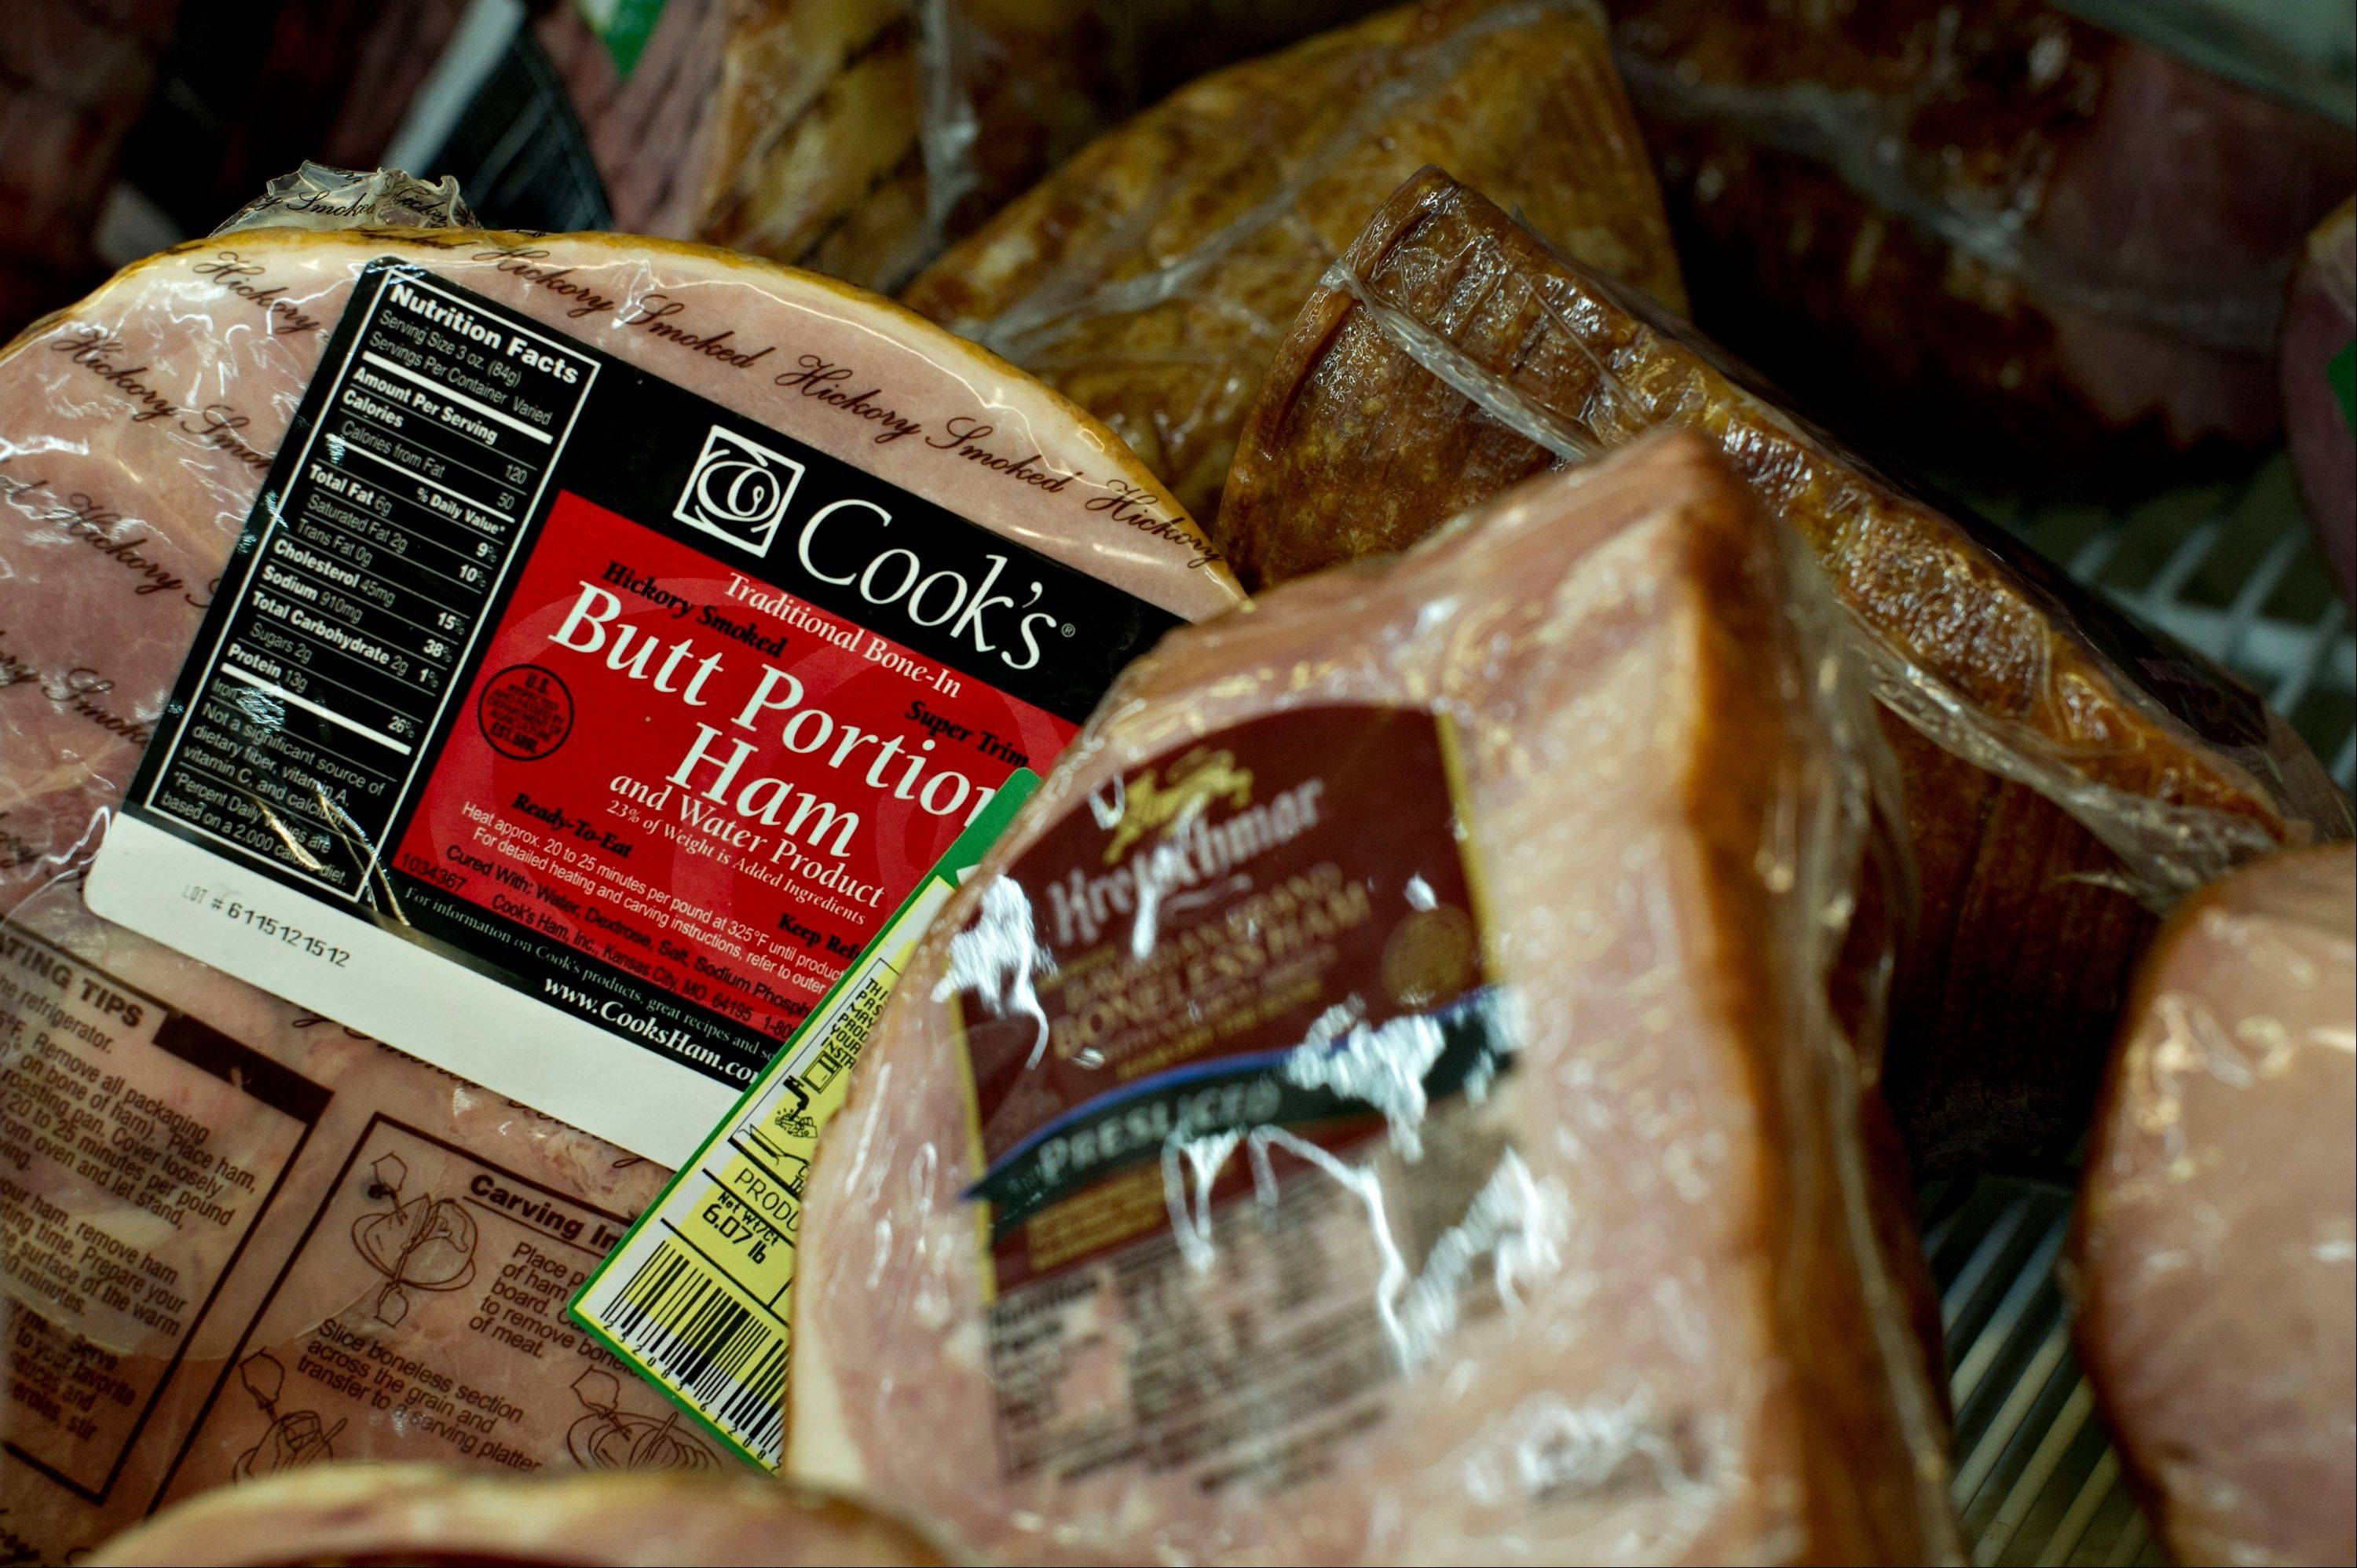 Smithfield Foods Inc. Cook's brand ham sits on display at a supermarket in Princeton, Illinois. Chinese meat processor Shuanghui International Holdings Ltd. has agreed to buy Smithfield Foods for approximately $4.72 billion.